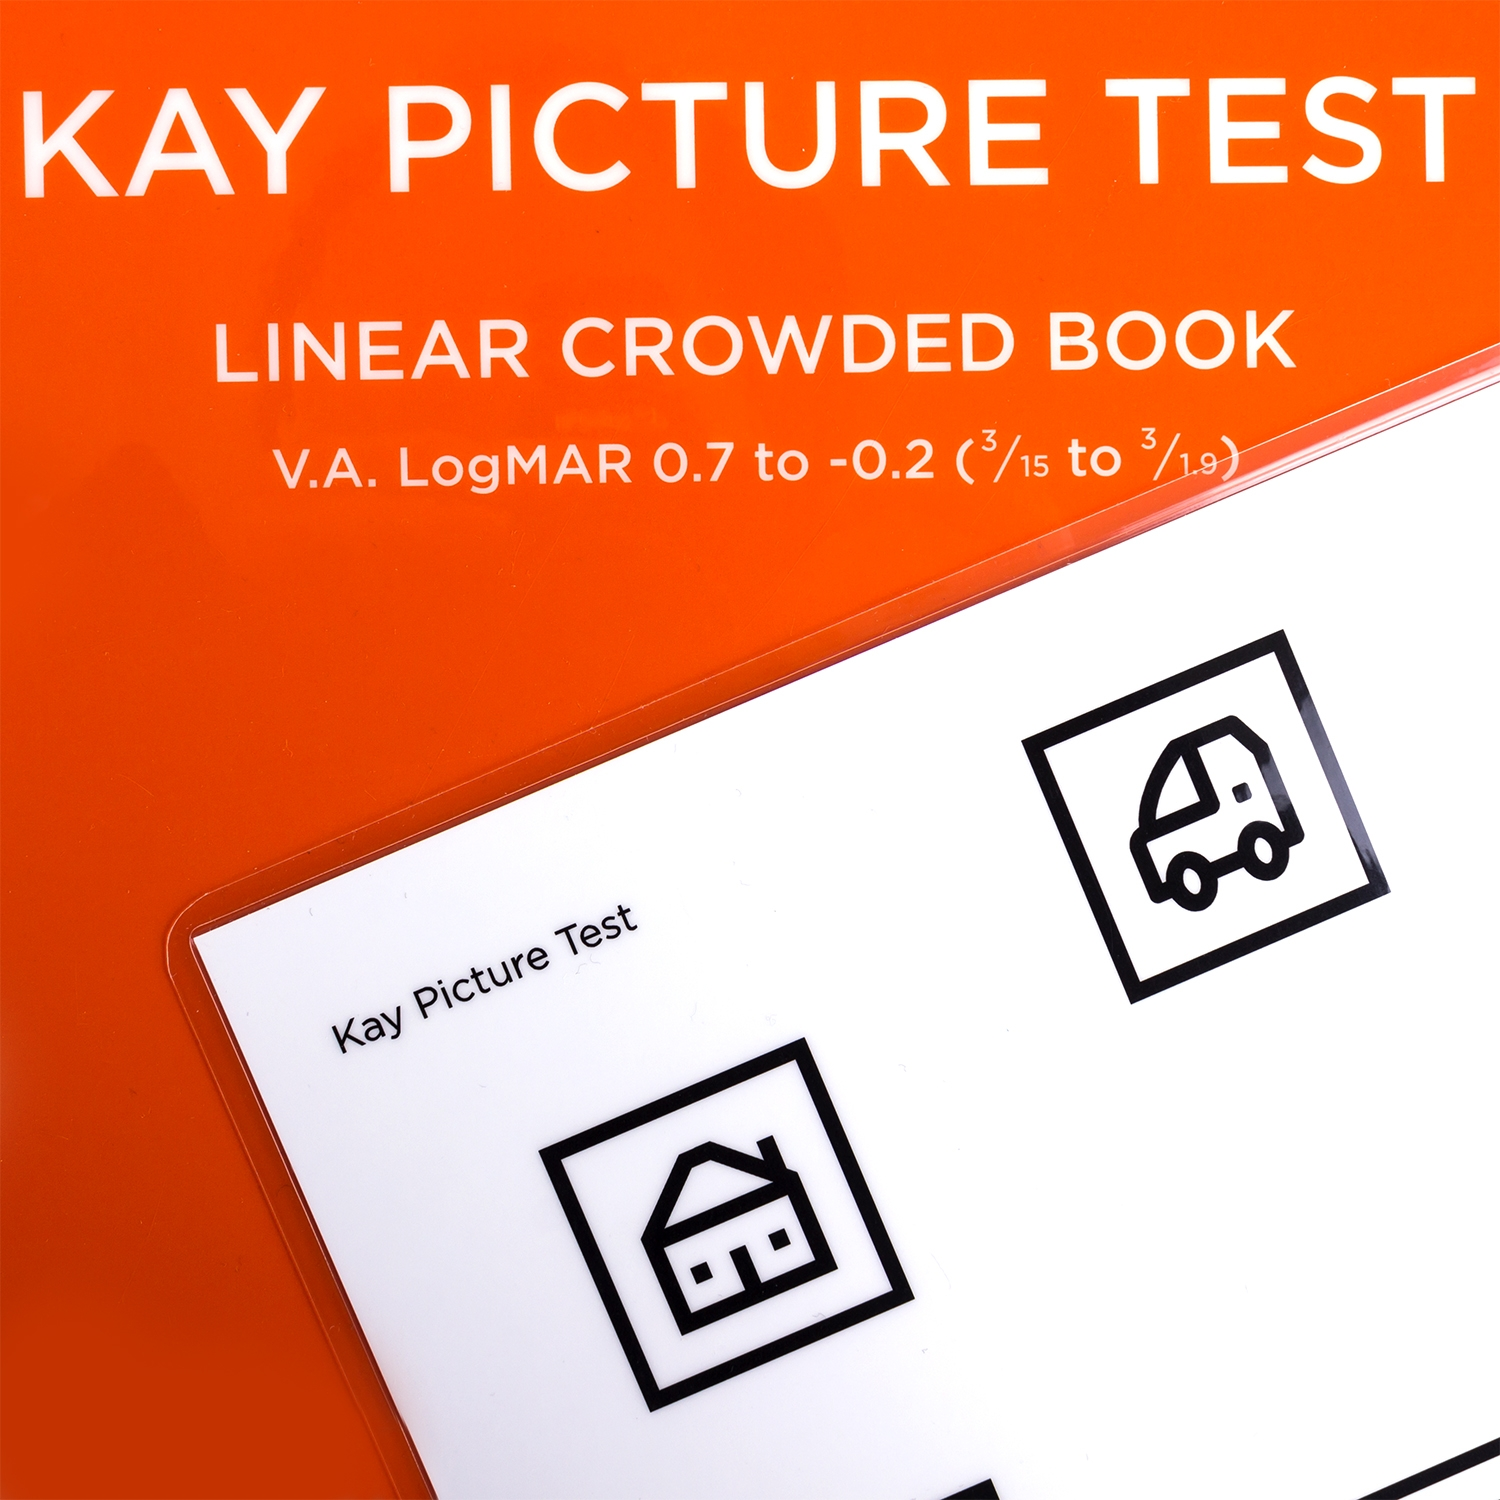 Kay 3m crowded linear book test